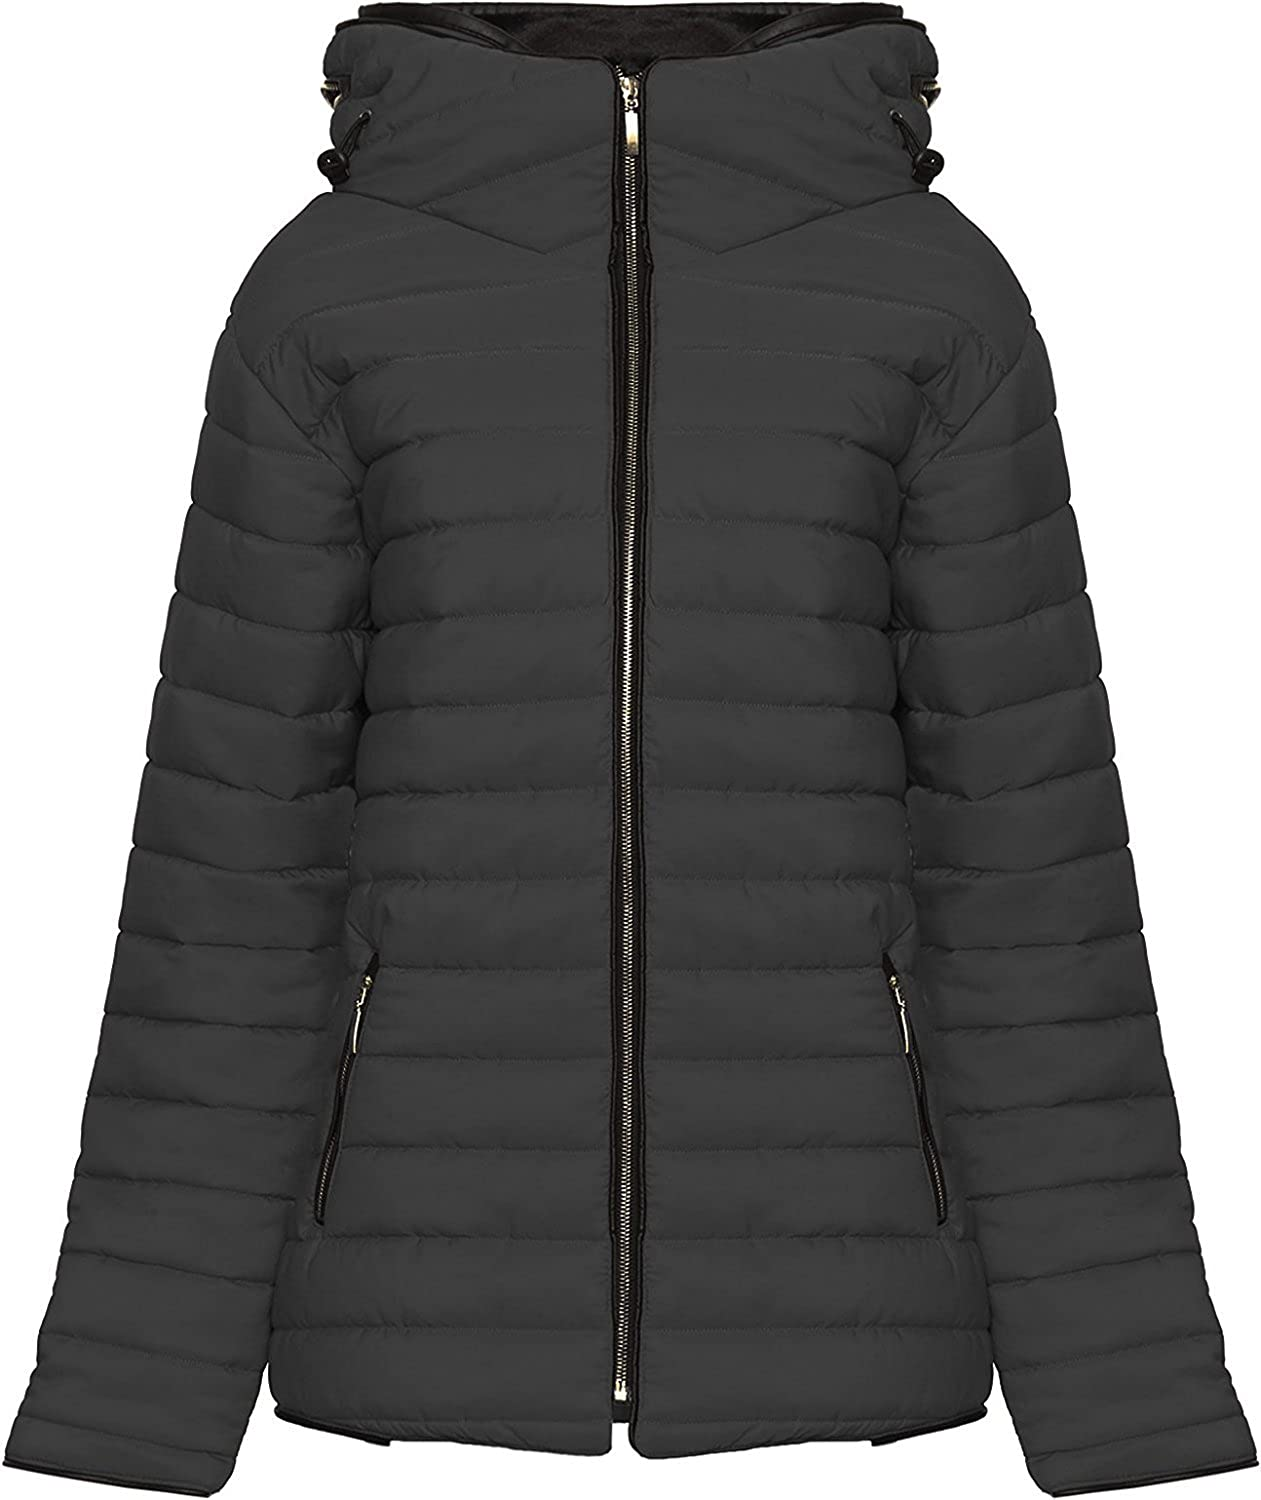 ce72f1bd7 Cima Mode Women Ladies Plus Size Puffa Padded Bubble Quilted Jacket ...